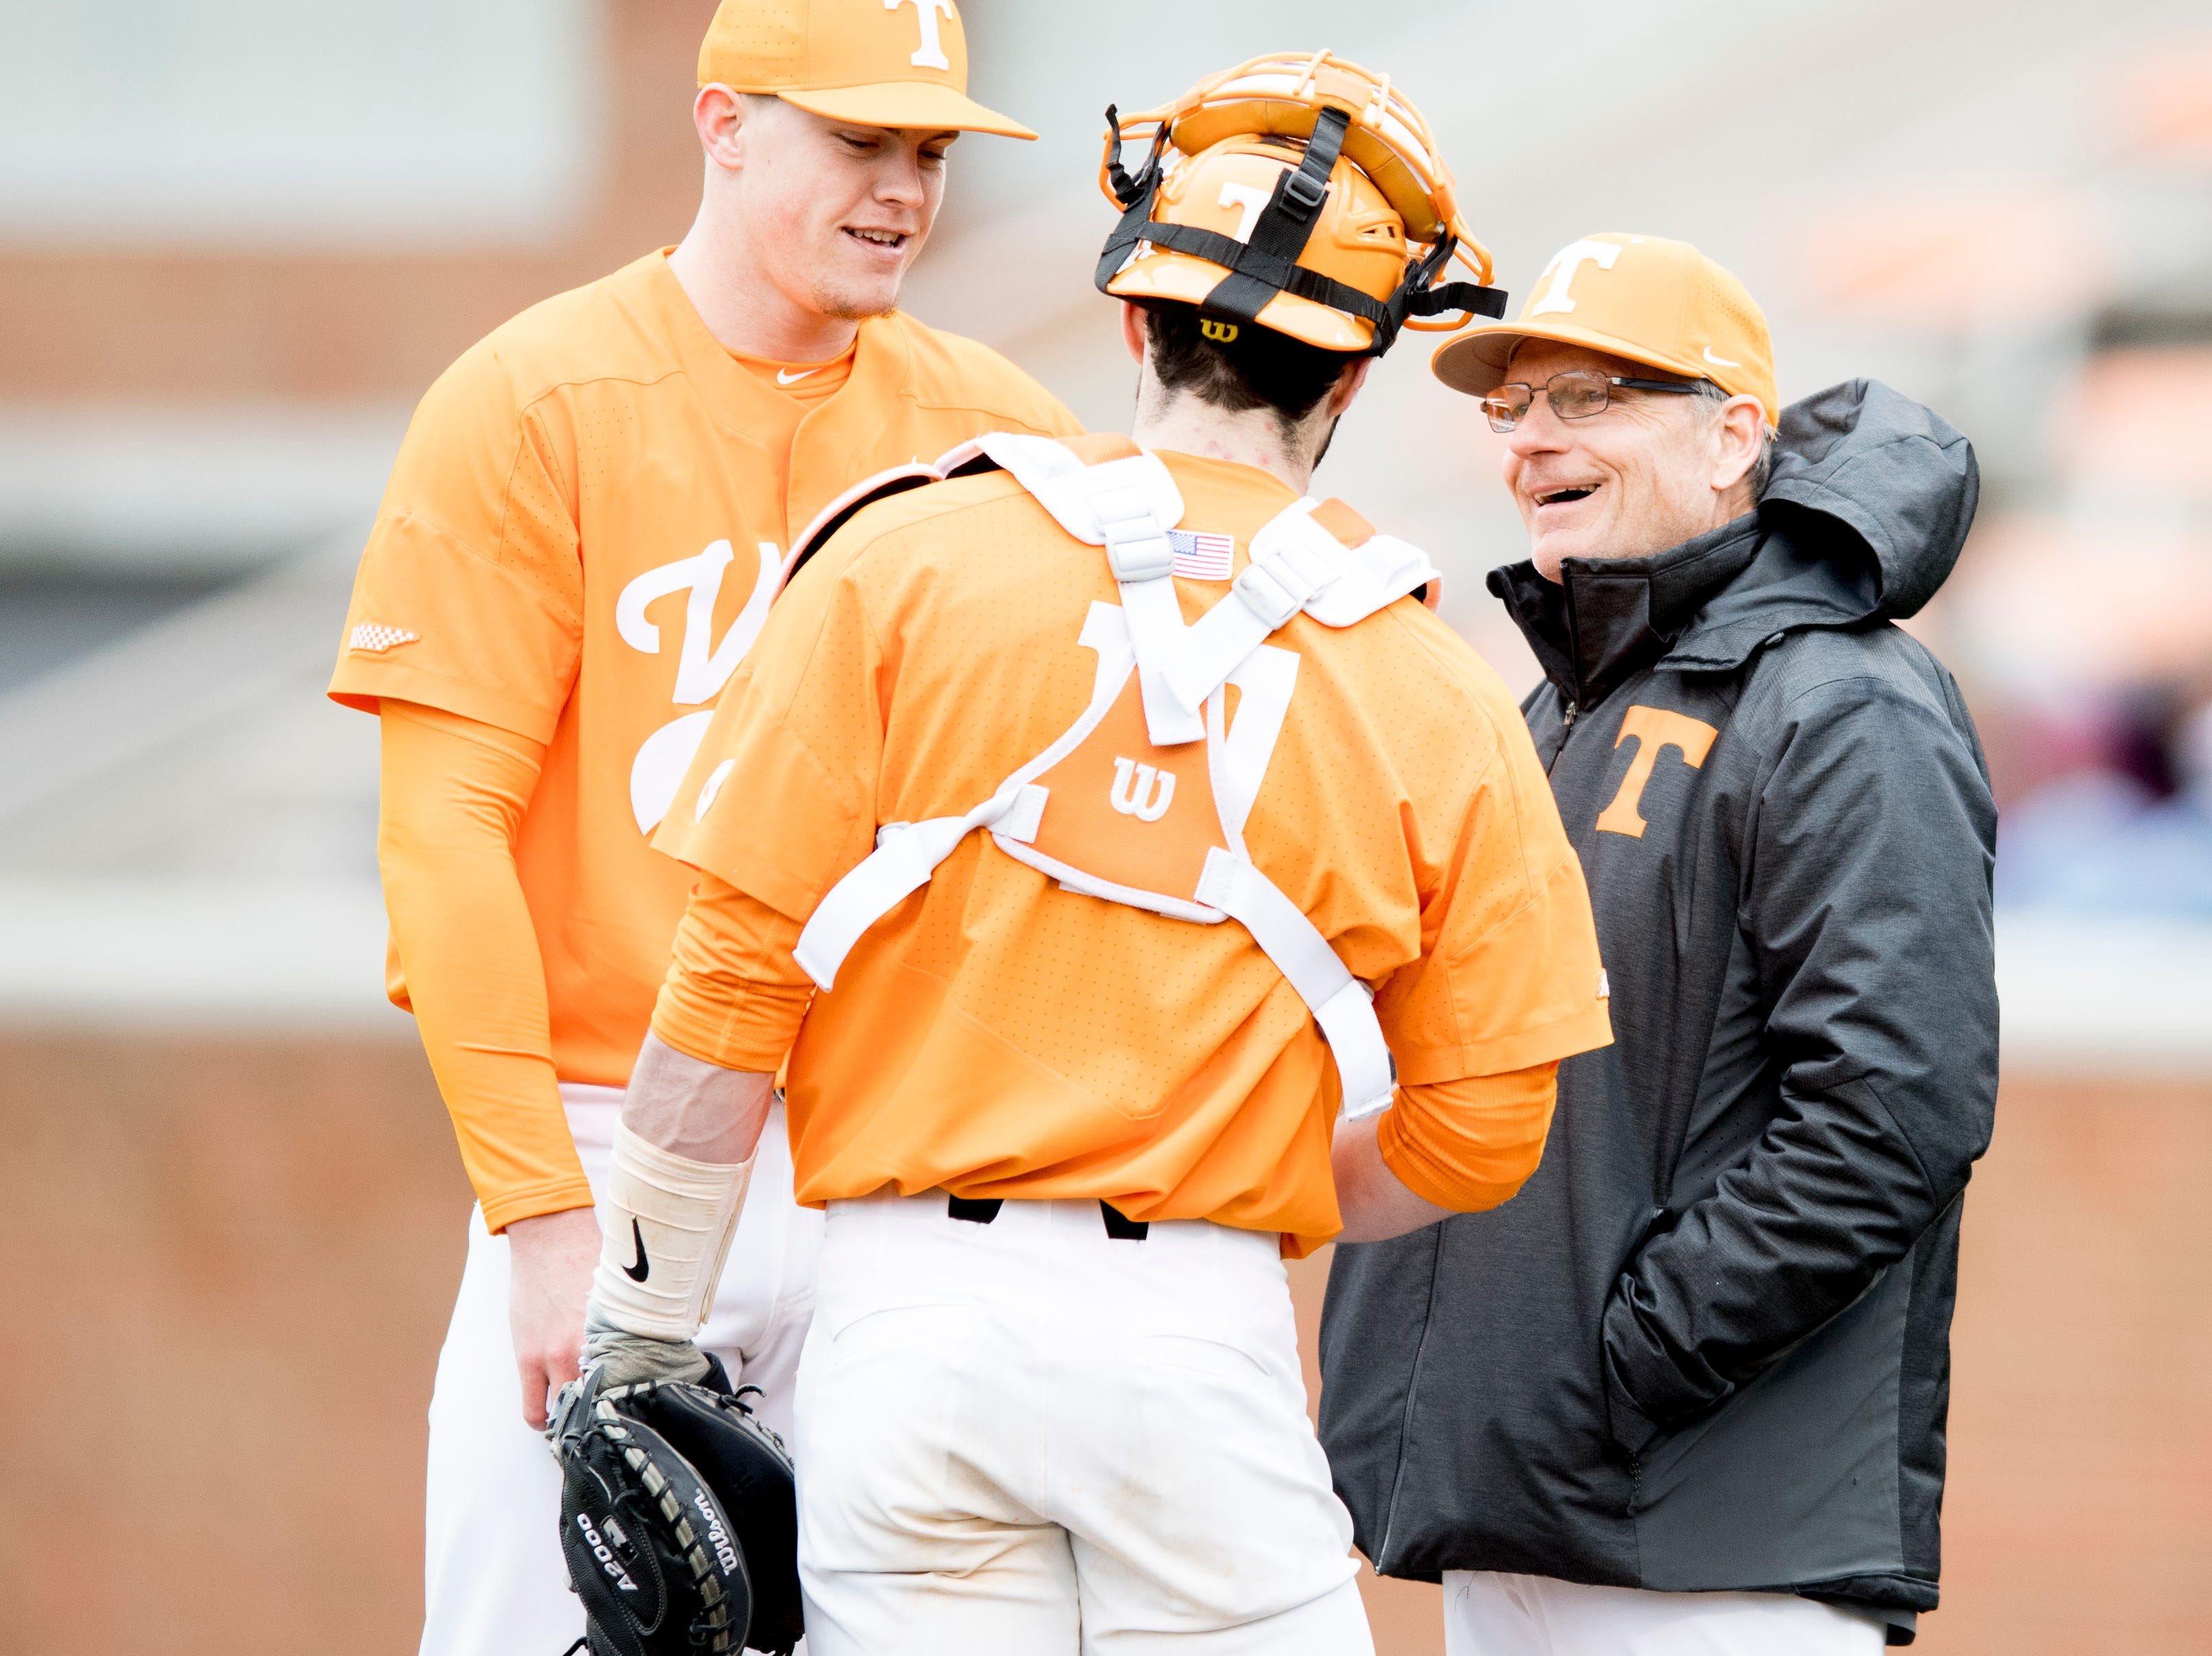 Tennessee Assistant Coach Frank Anderson speaks with Tennessee catcher Connor Pavolony (17) and Tennessee pitcher Zach Linginfelter (25) at the pitchers mound during a Tennessee baseball home opener game against Appalachian State at Lindsey Nelson Stadium in Knoxville, Tennessee on Saturday, February 16, 2019.